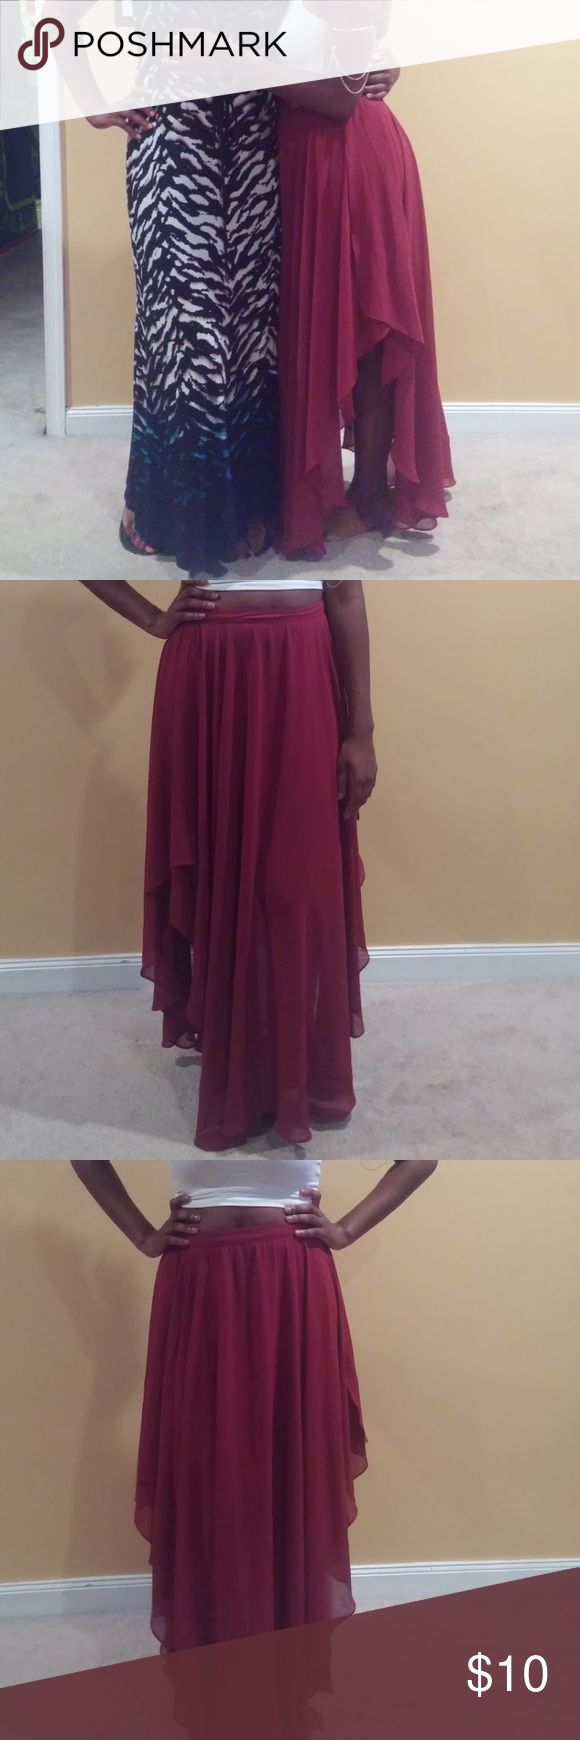 High Low Maxi Skirt Hello, This is a high low maxi skirt. It is a low in the front and back, and high on the sides. I like to wear this skirt in the summer with a crop top and sandals or in the winter with leggingd, boots, crop sweater and leather jacket. This skirt is in great condition. Forever21 Skirts High Low